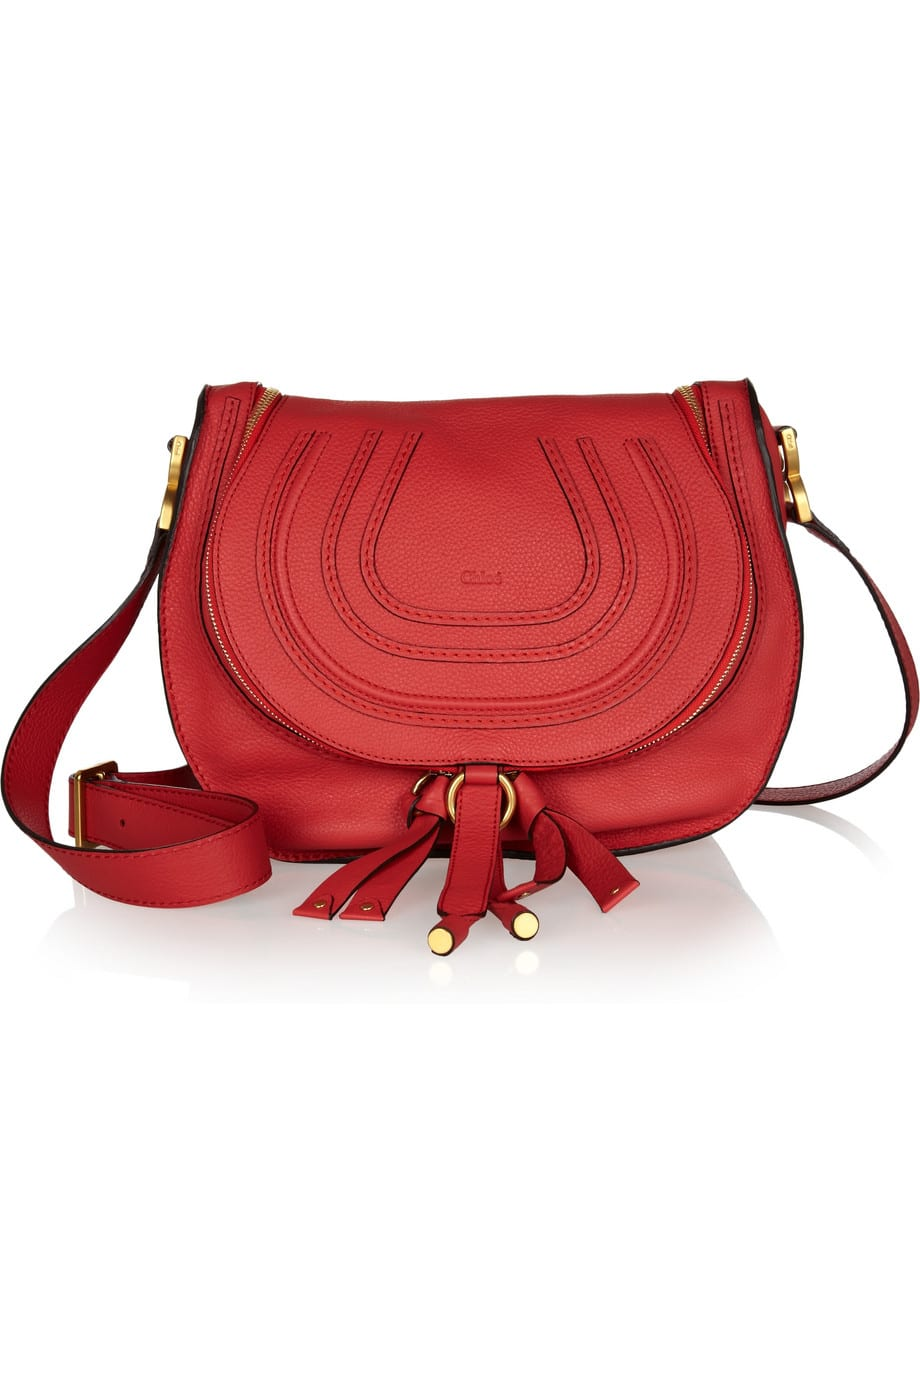 chloe marcie bag reference guide spotted fashion